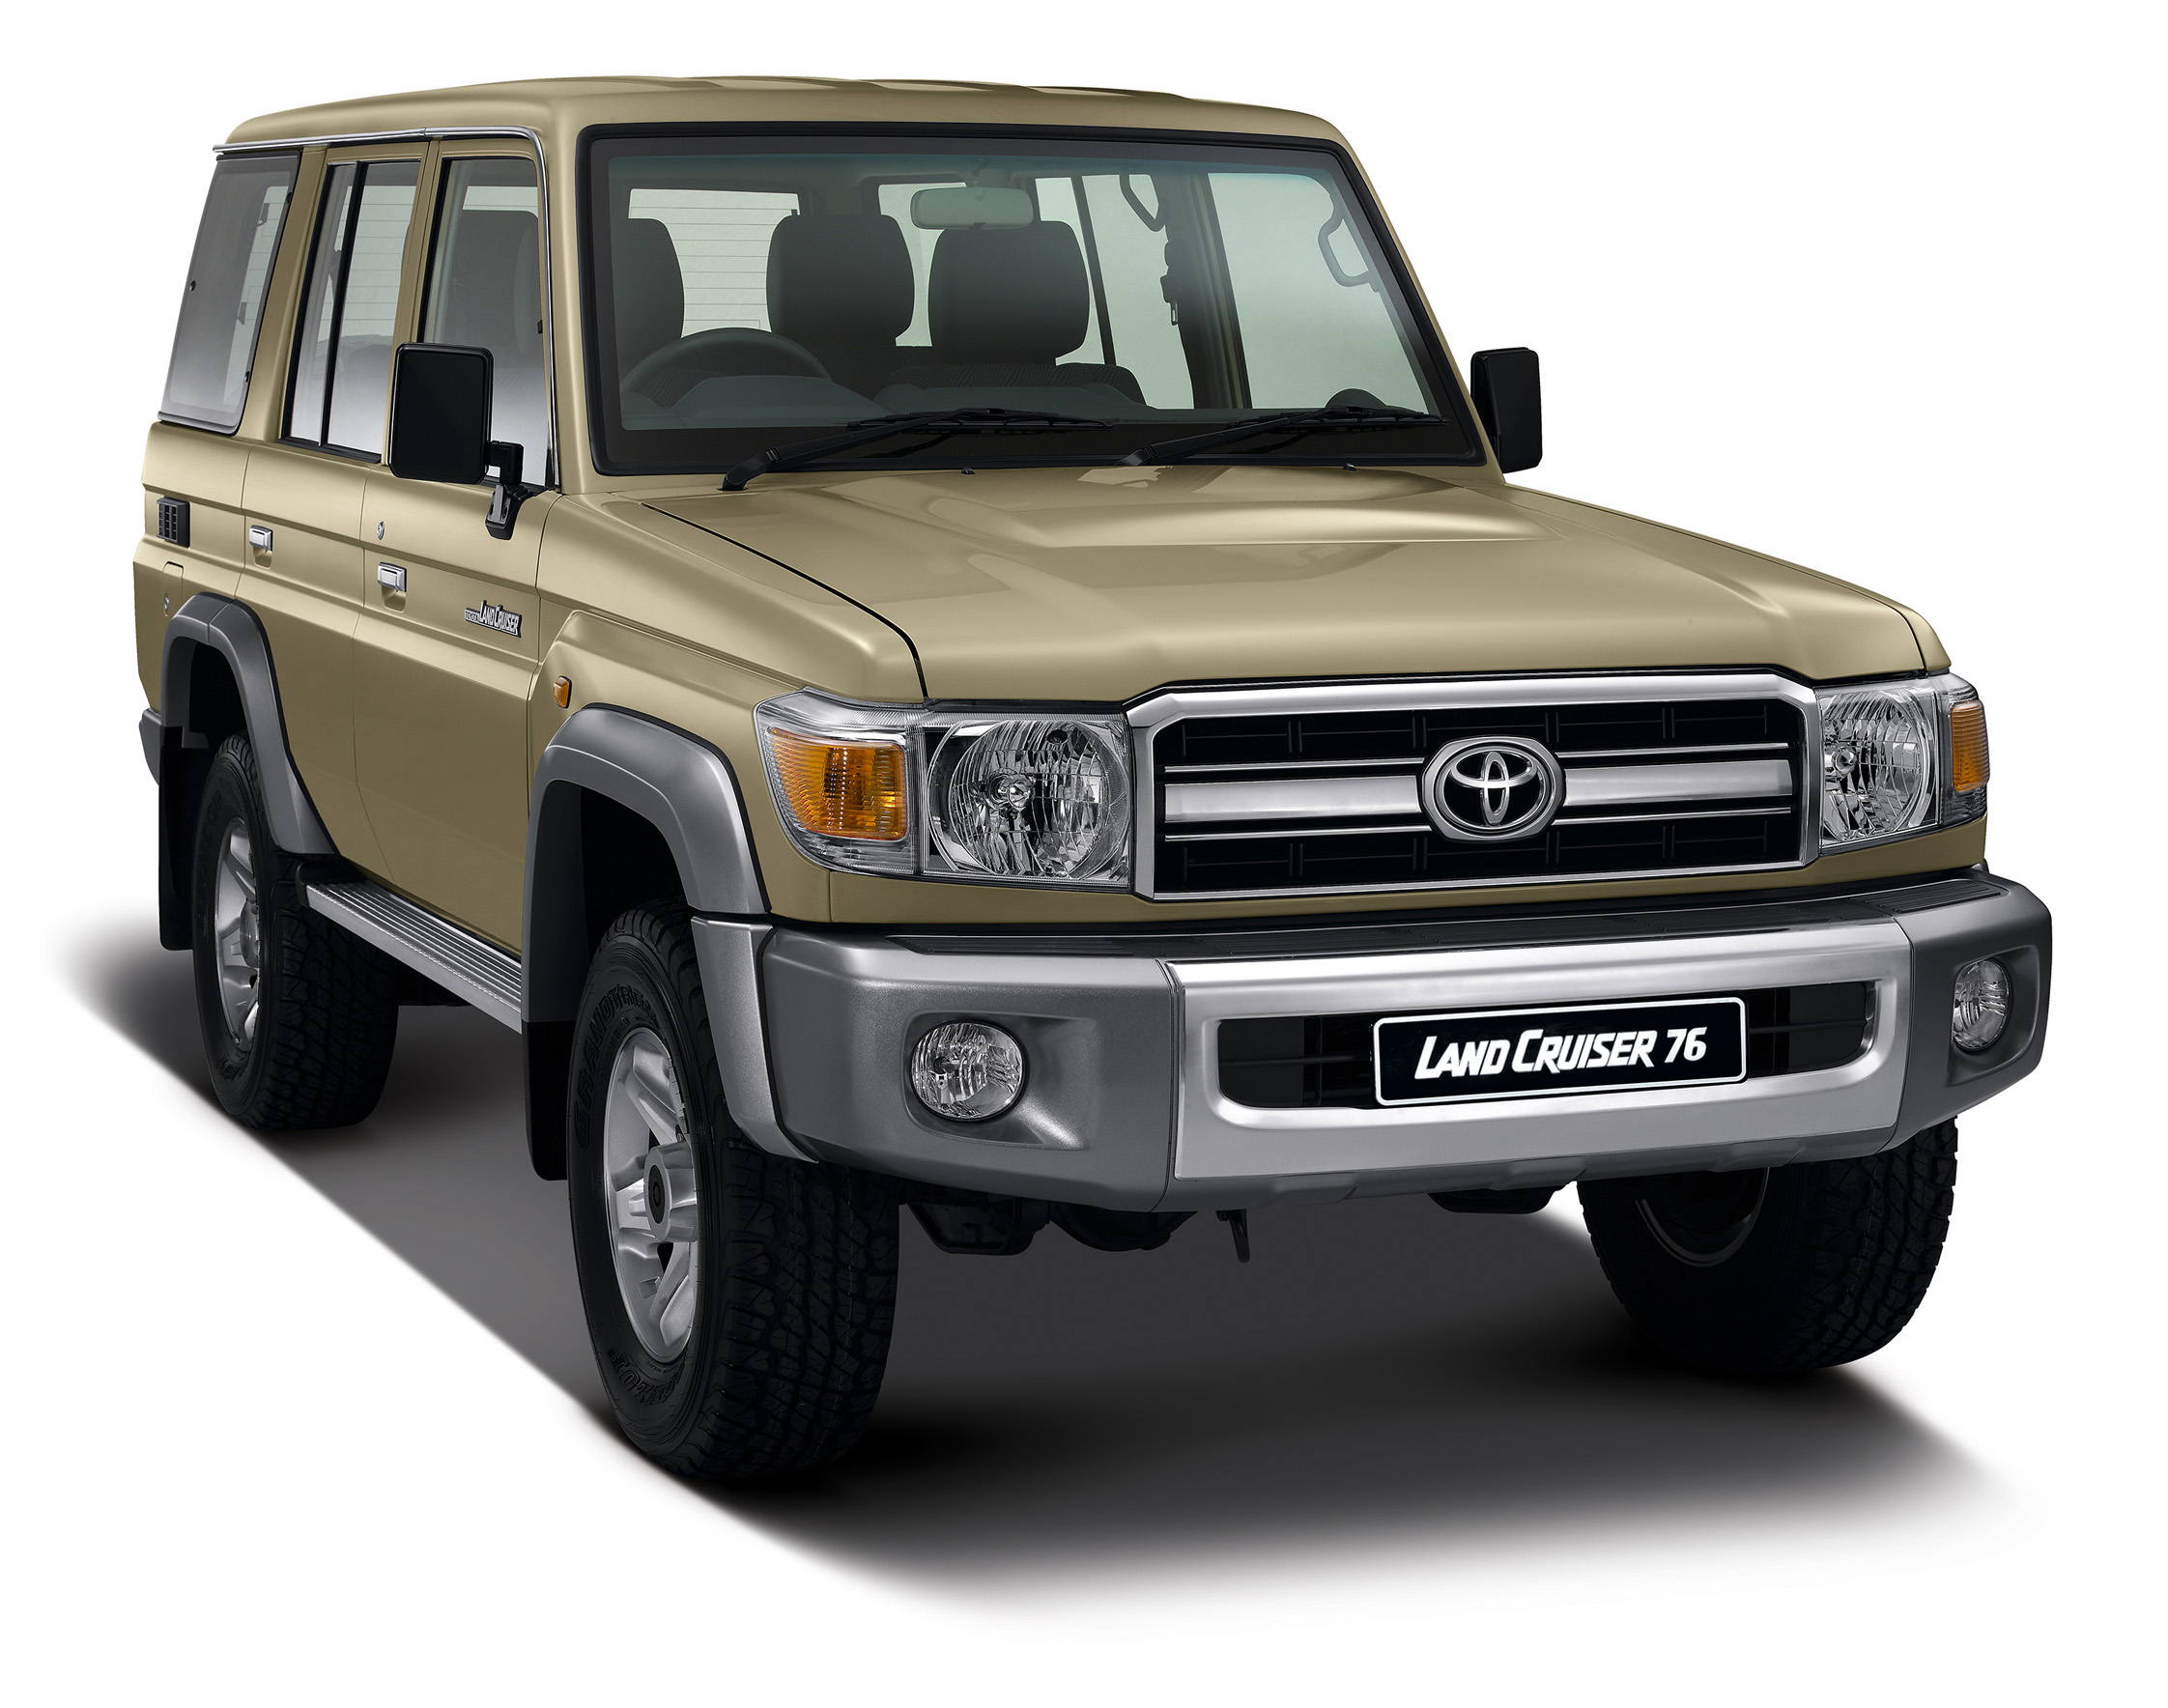 toyota land cruiser 76 hzj76 4 2 td 204 hp. Black Bedroom Furniture Sets. Home Design Ideas